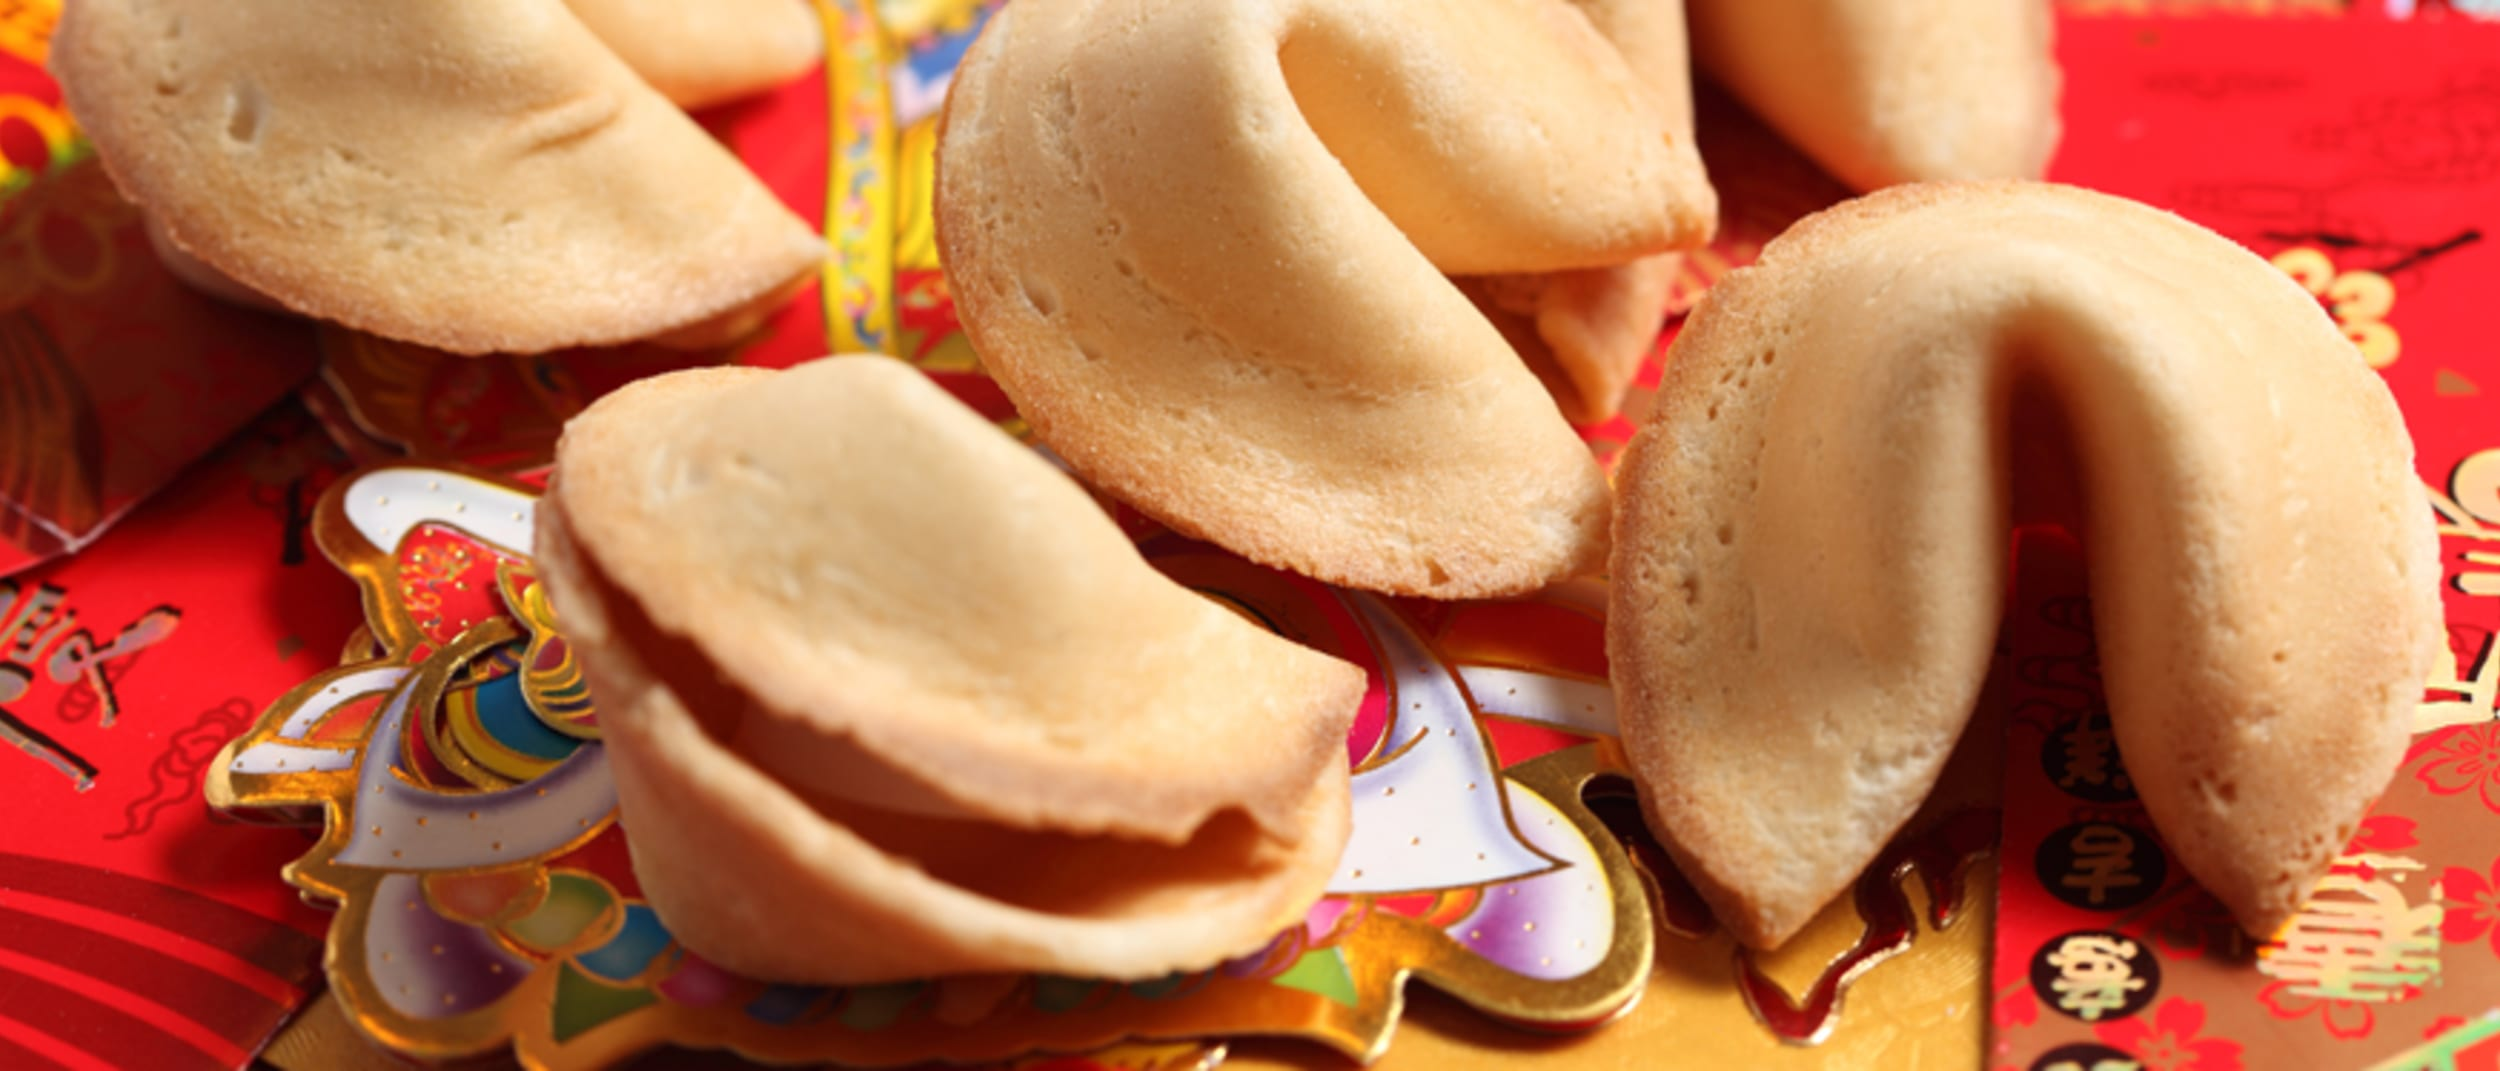 Free fortune cookies this Lunar New Year